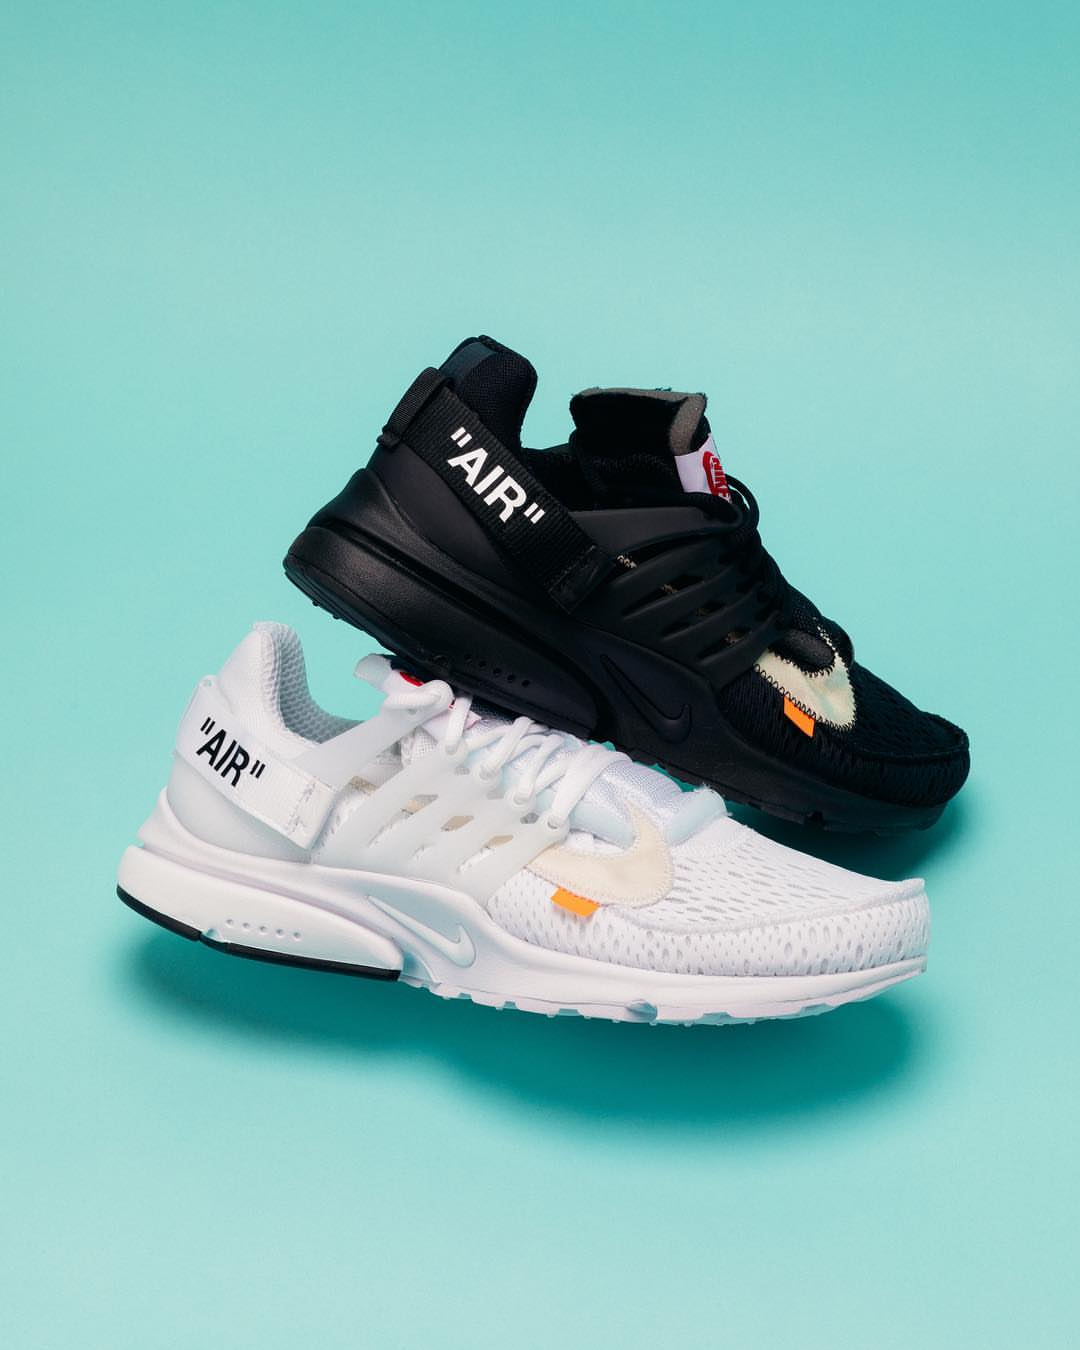 The Off-White x Nike Air Presto: How Will It Sell - StockX News